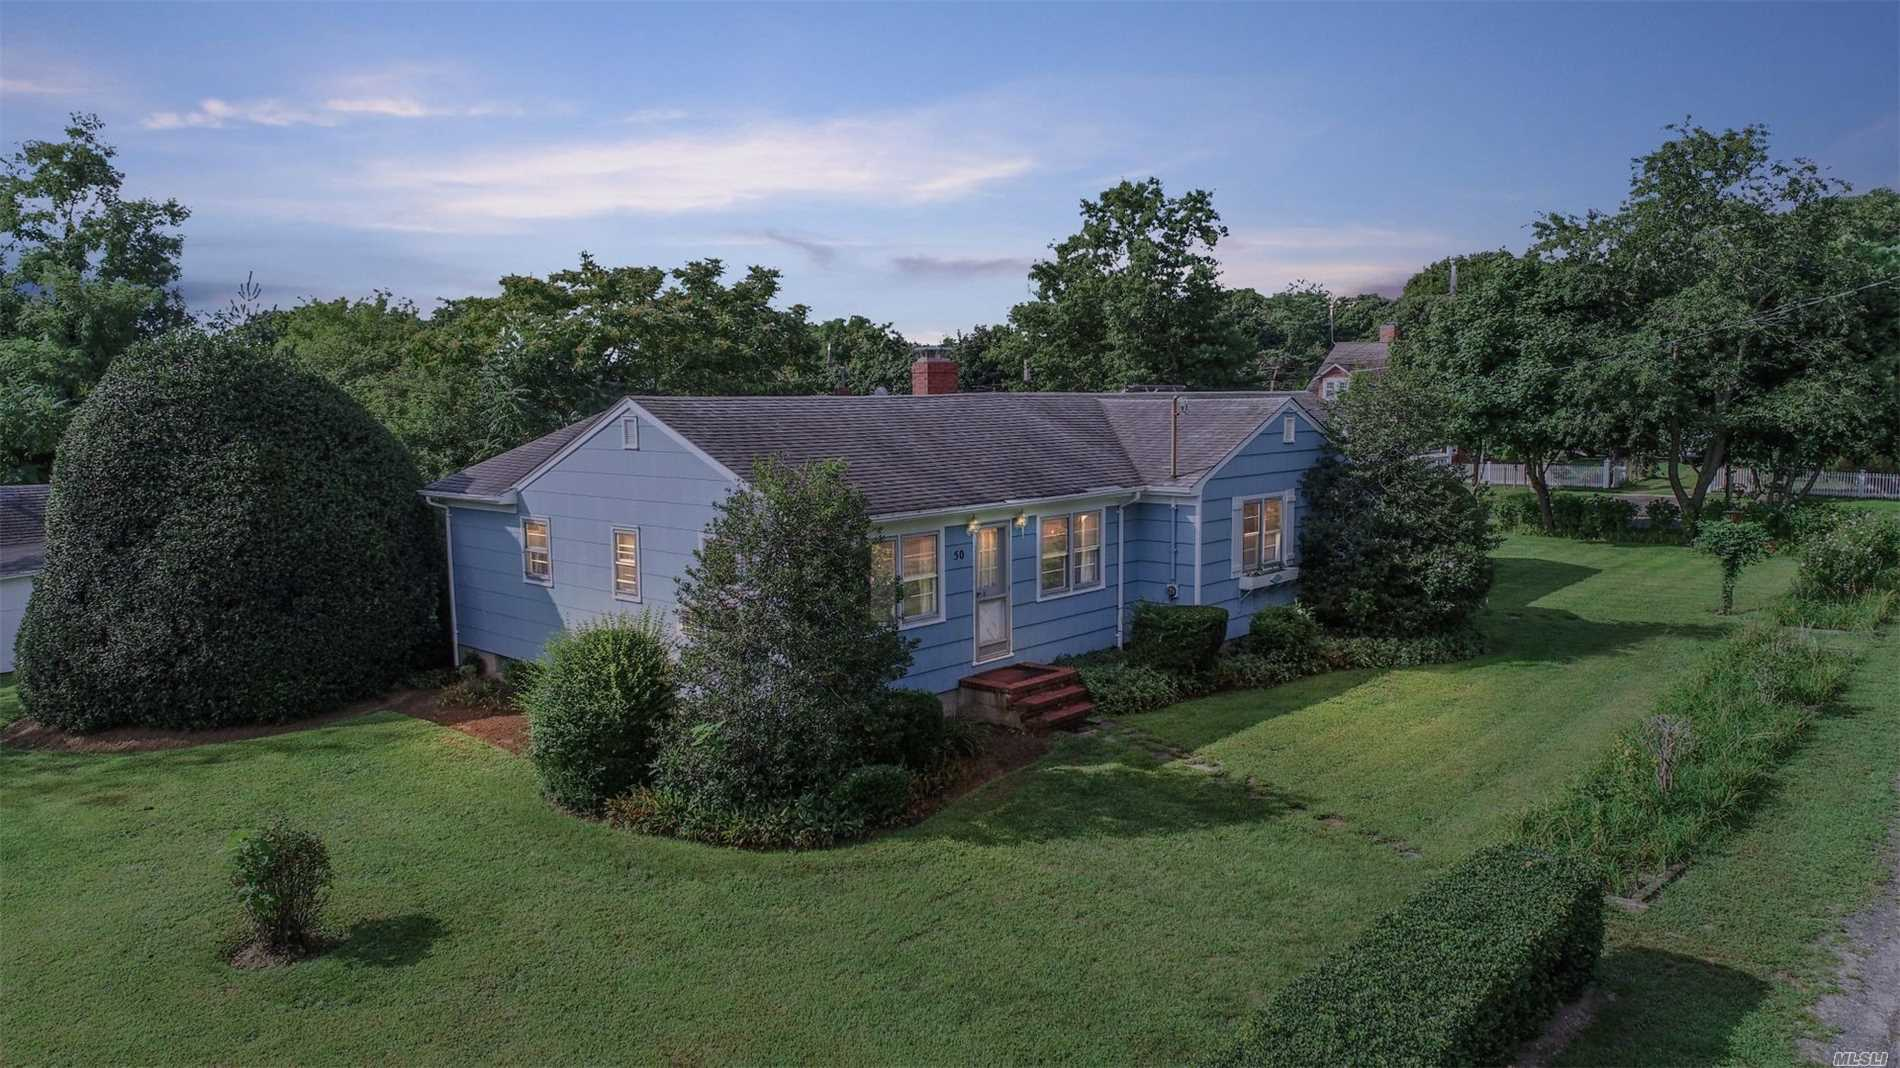 Unique Opportunity 4Br, 2Ba Ranch With Lr, Eik, Sun Room, Family Room With F/P, Full Bsmnt., And A 2Br, 1Ba, Rental Income Cottage. Located 700' From Beautiful Bay Beach, Deeded Creek Access As Well At The End Of The Street